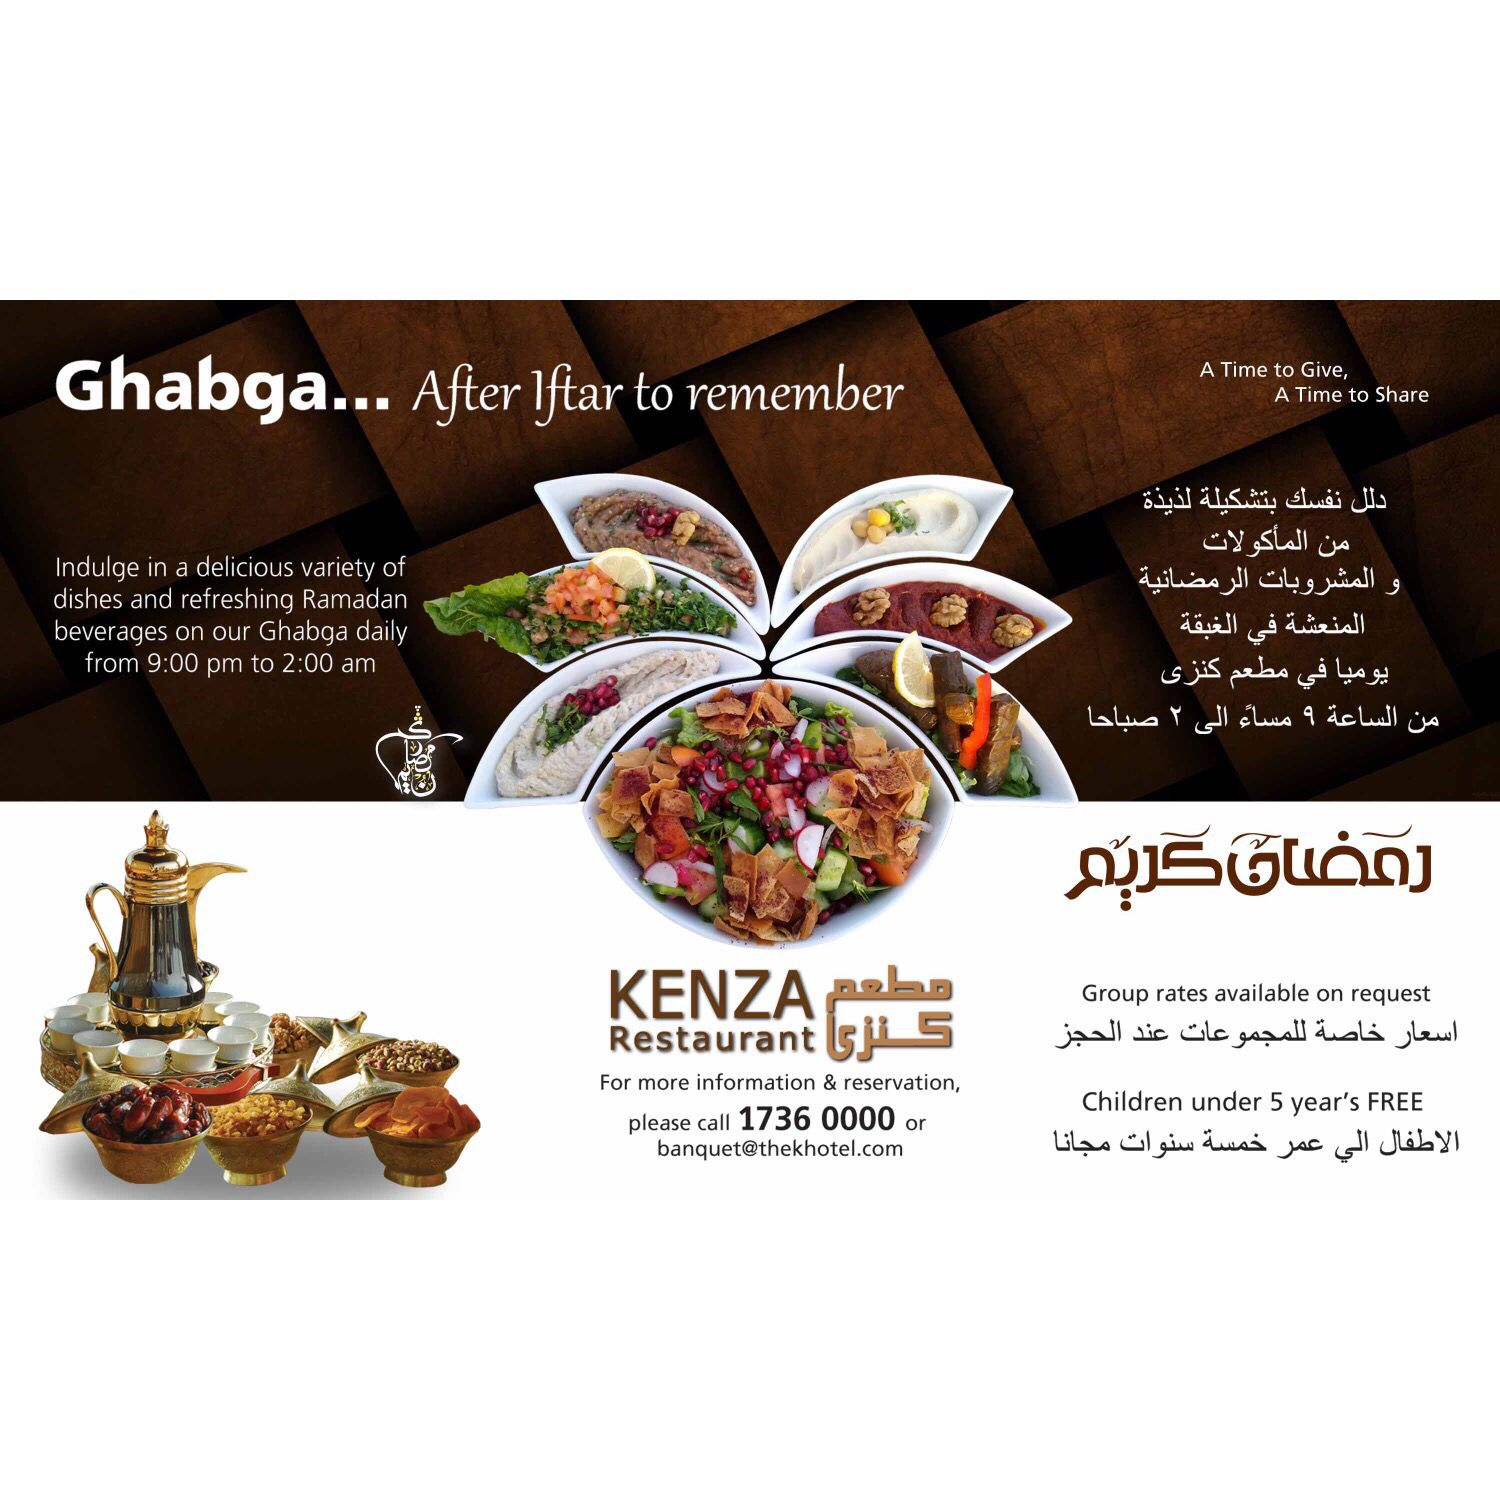 Imagine Dining Under The Stars At Kenza In The World With Some Of The Most Extraordinary Views In The City A Evening Meals Late Night Dinner In Season Produce